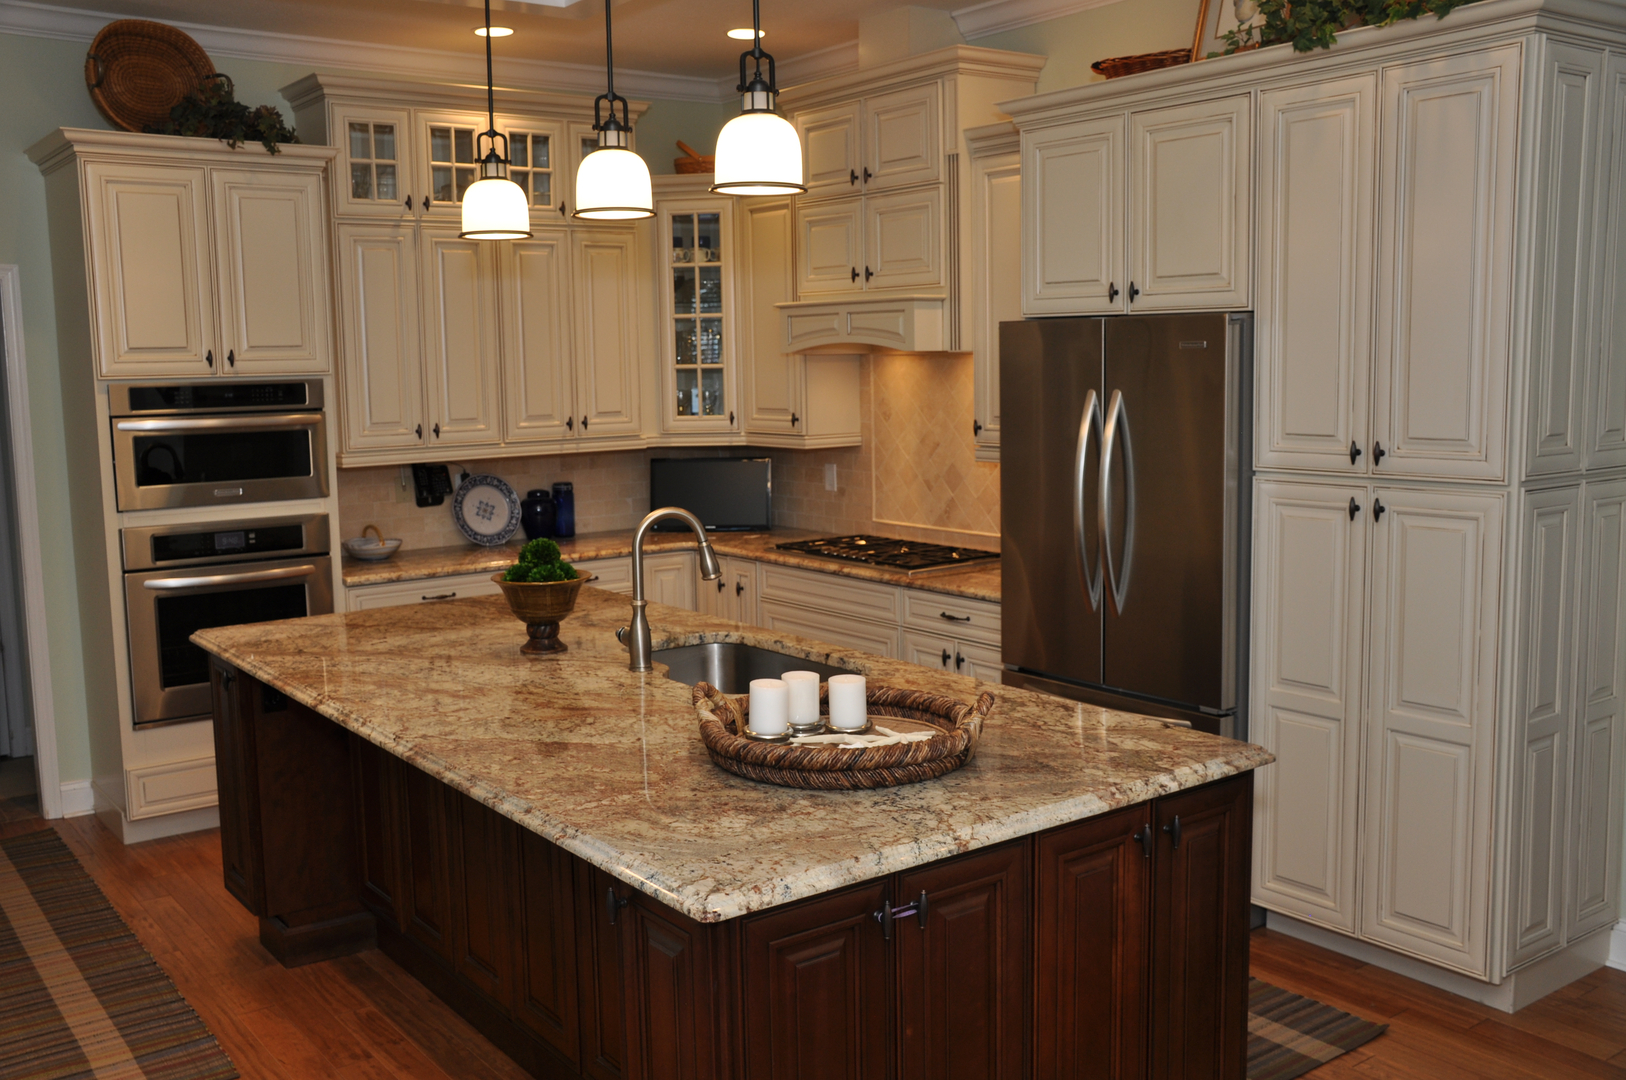 Bathroom Remodeling Toms River Nj csd kitchen and bath, llc kitchen cabinet new jersey, kitchen